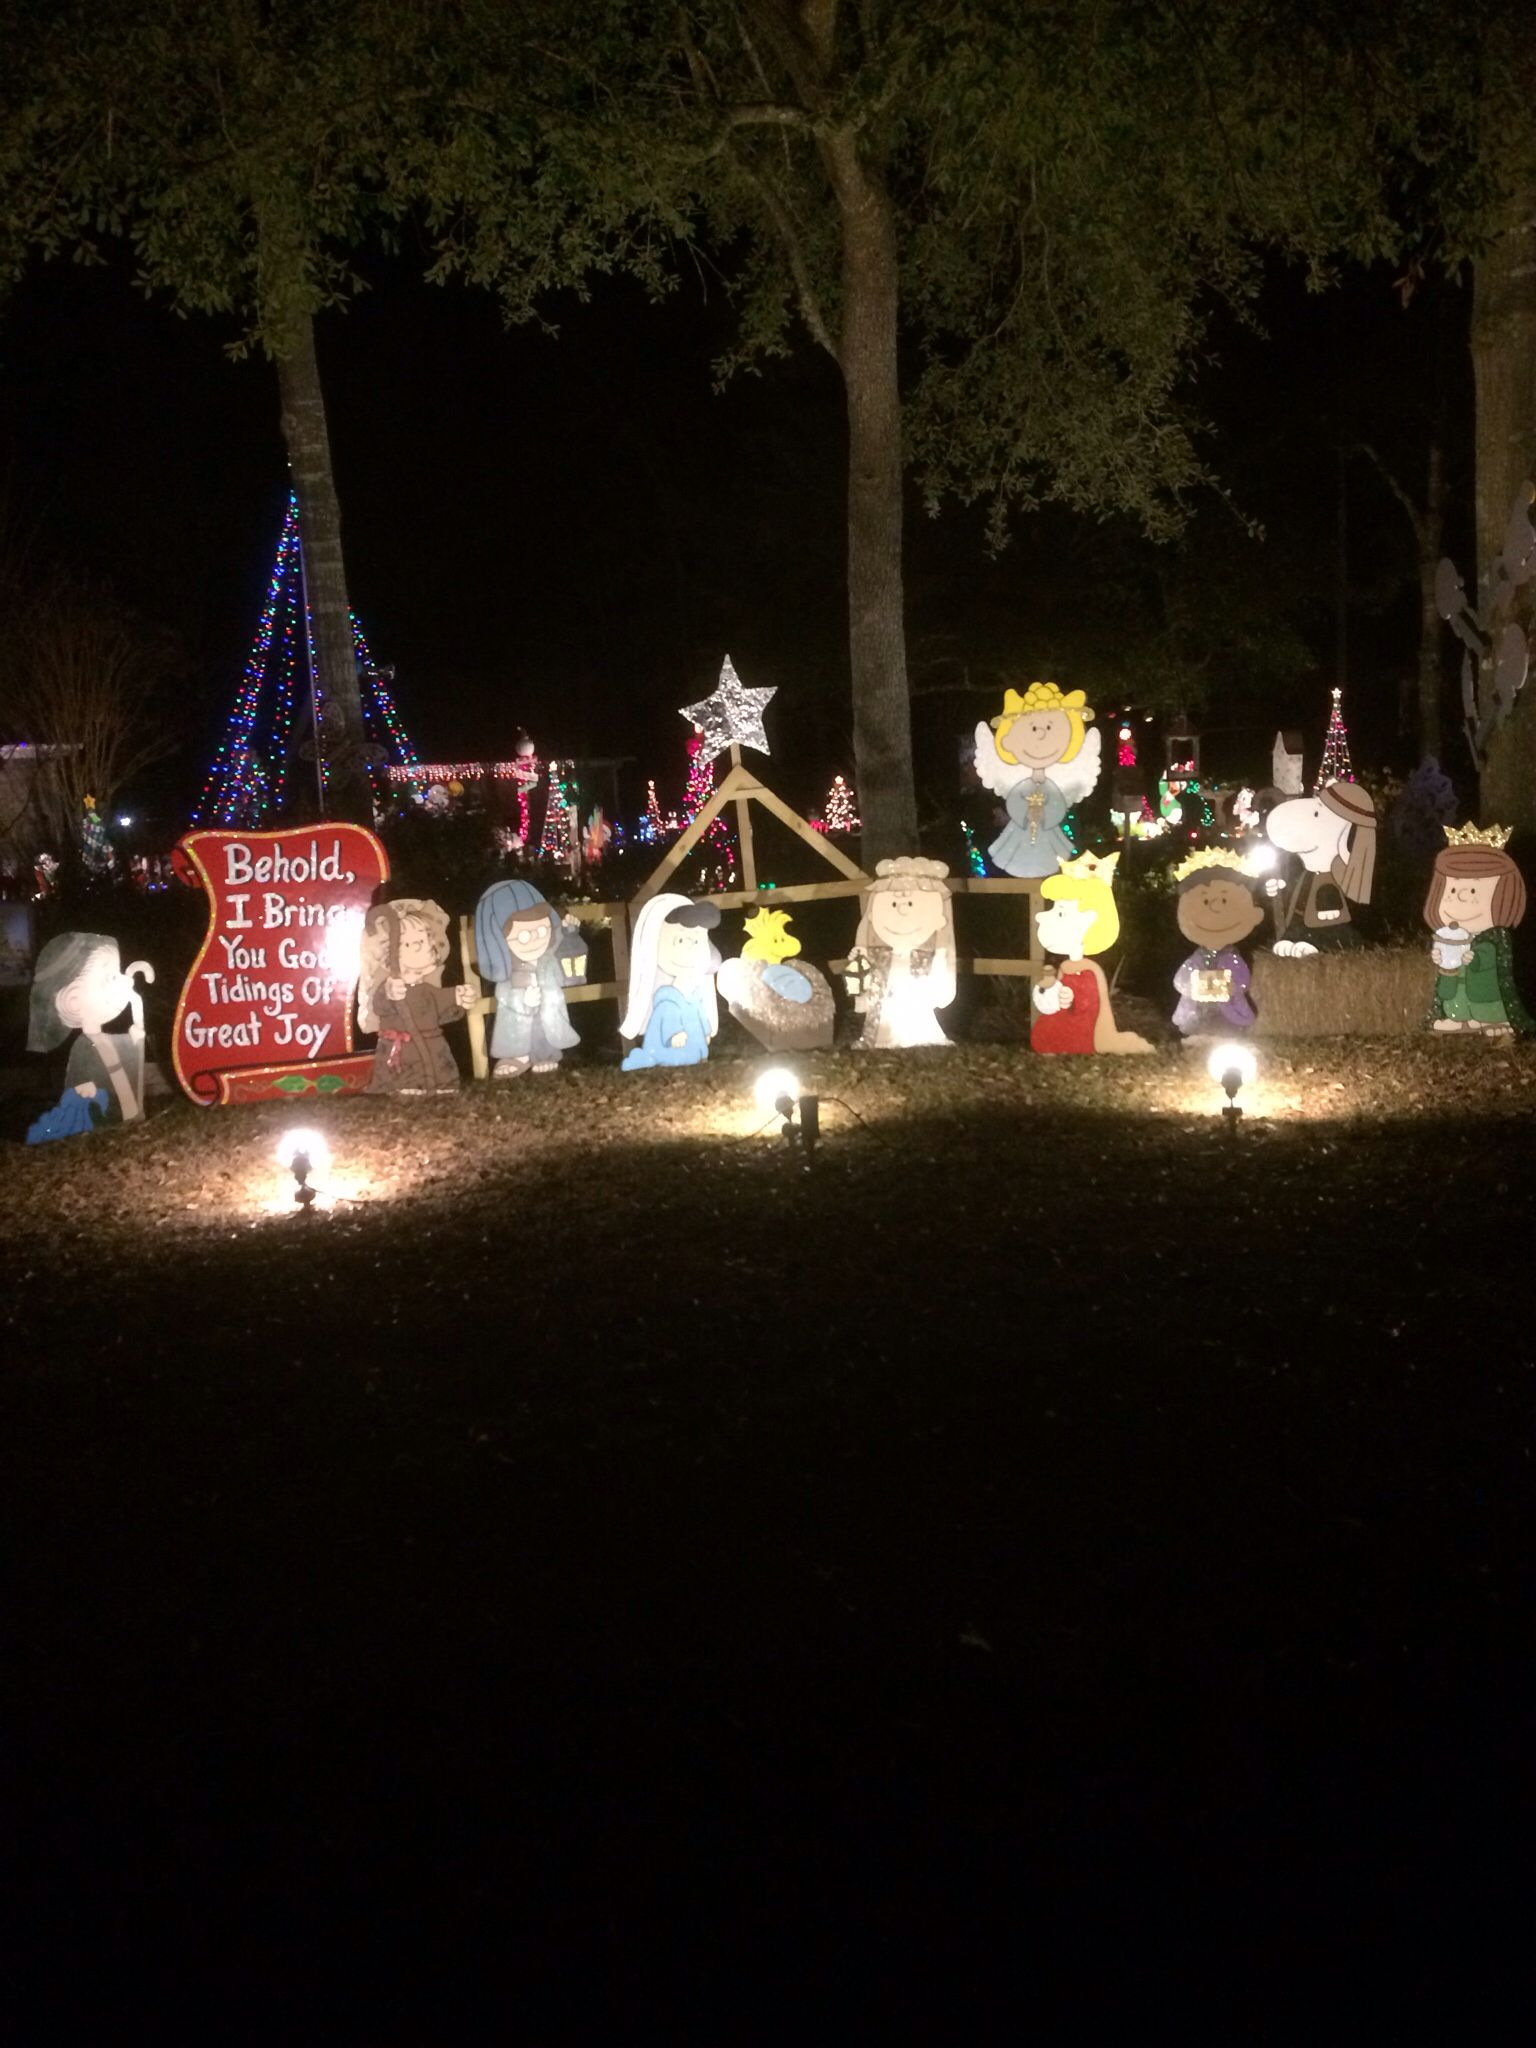 My Charlie Brown Peanuts Christmas Nativity yard art